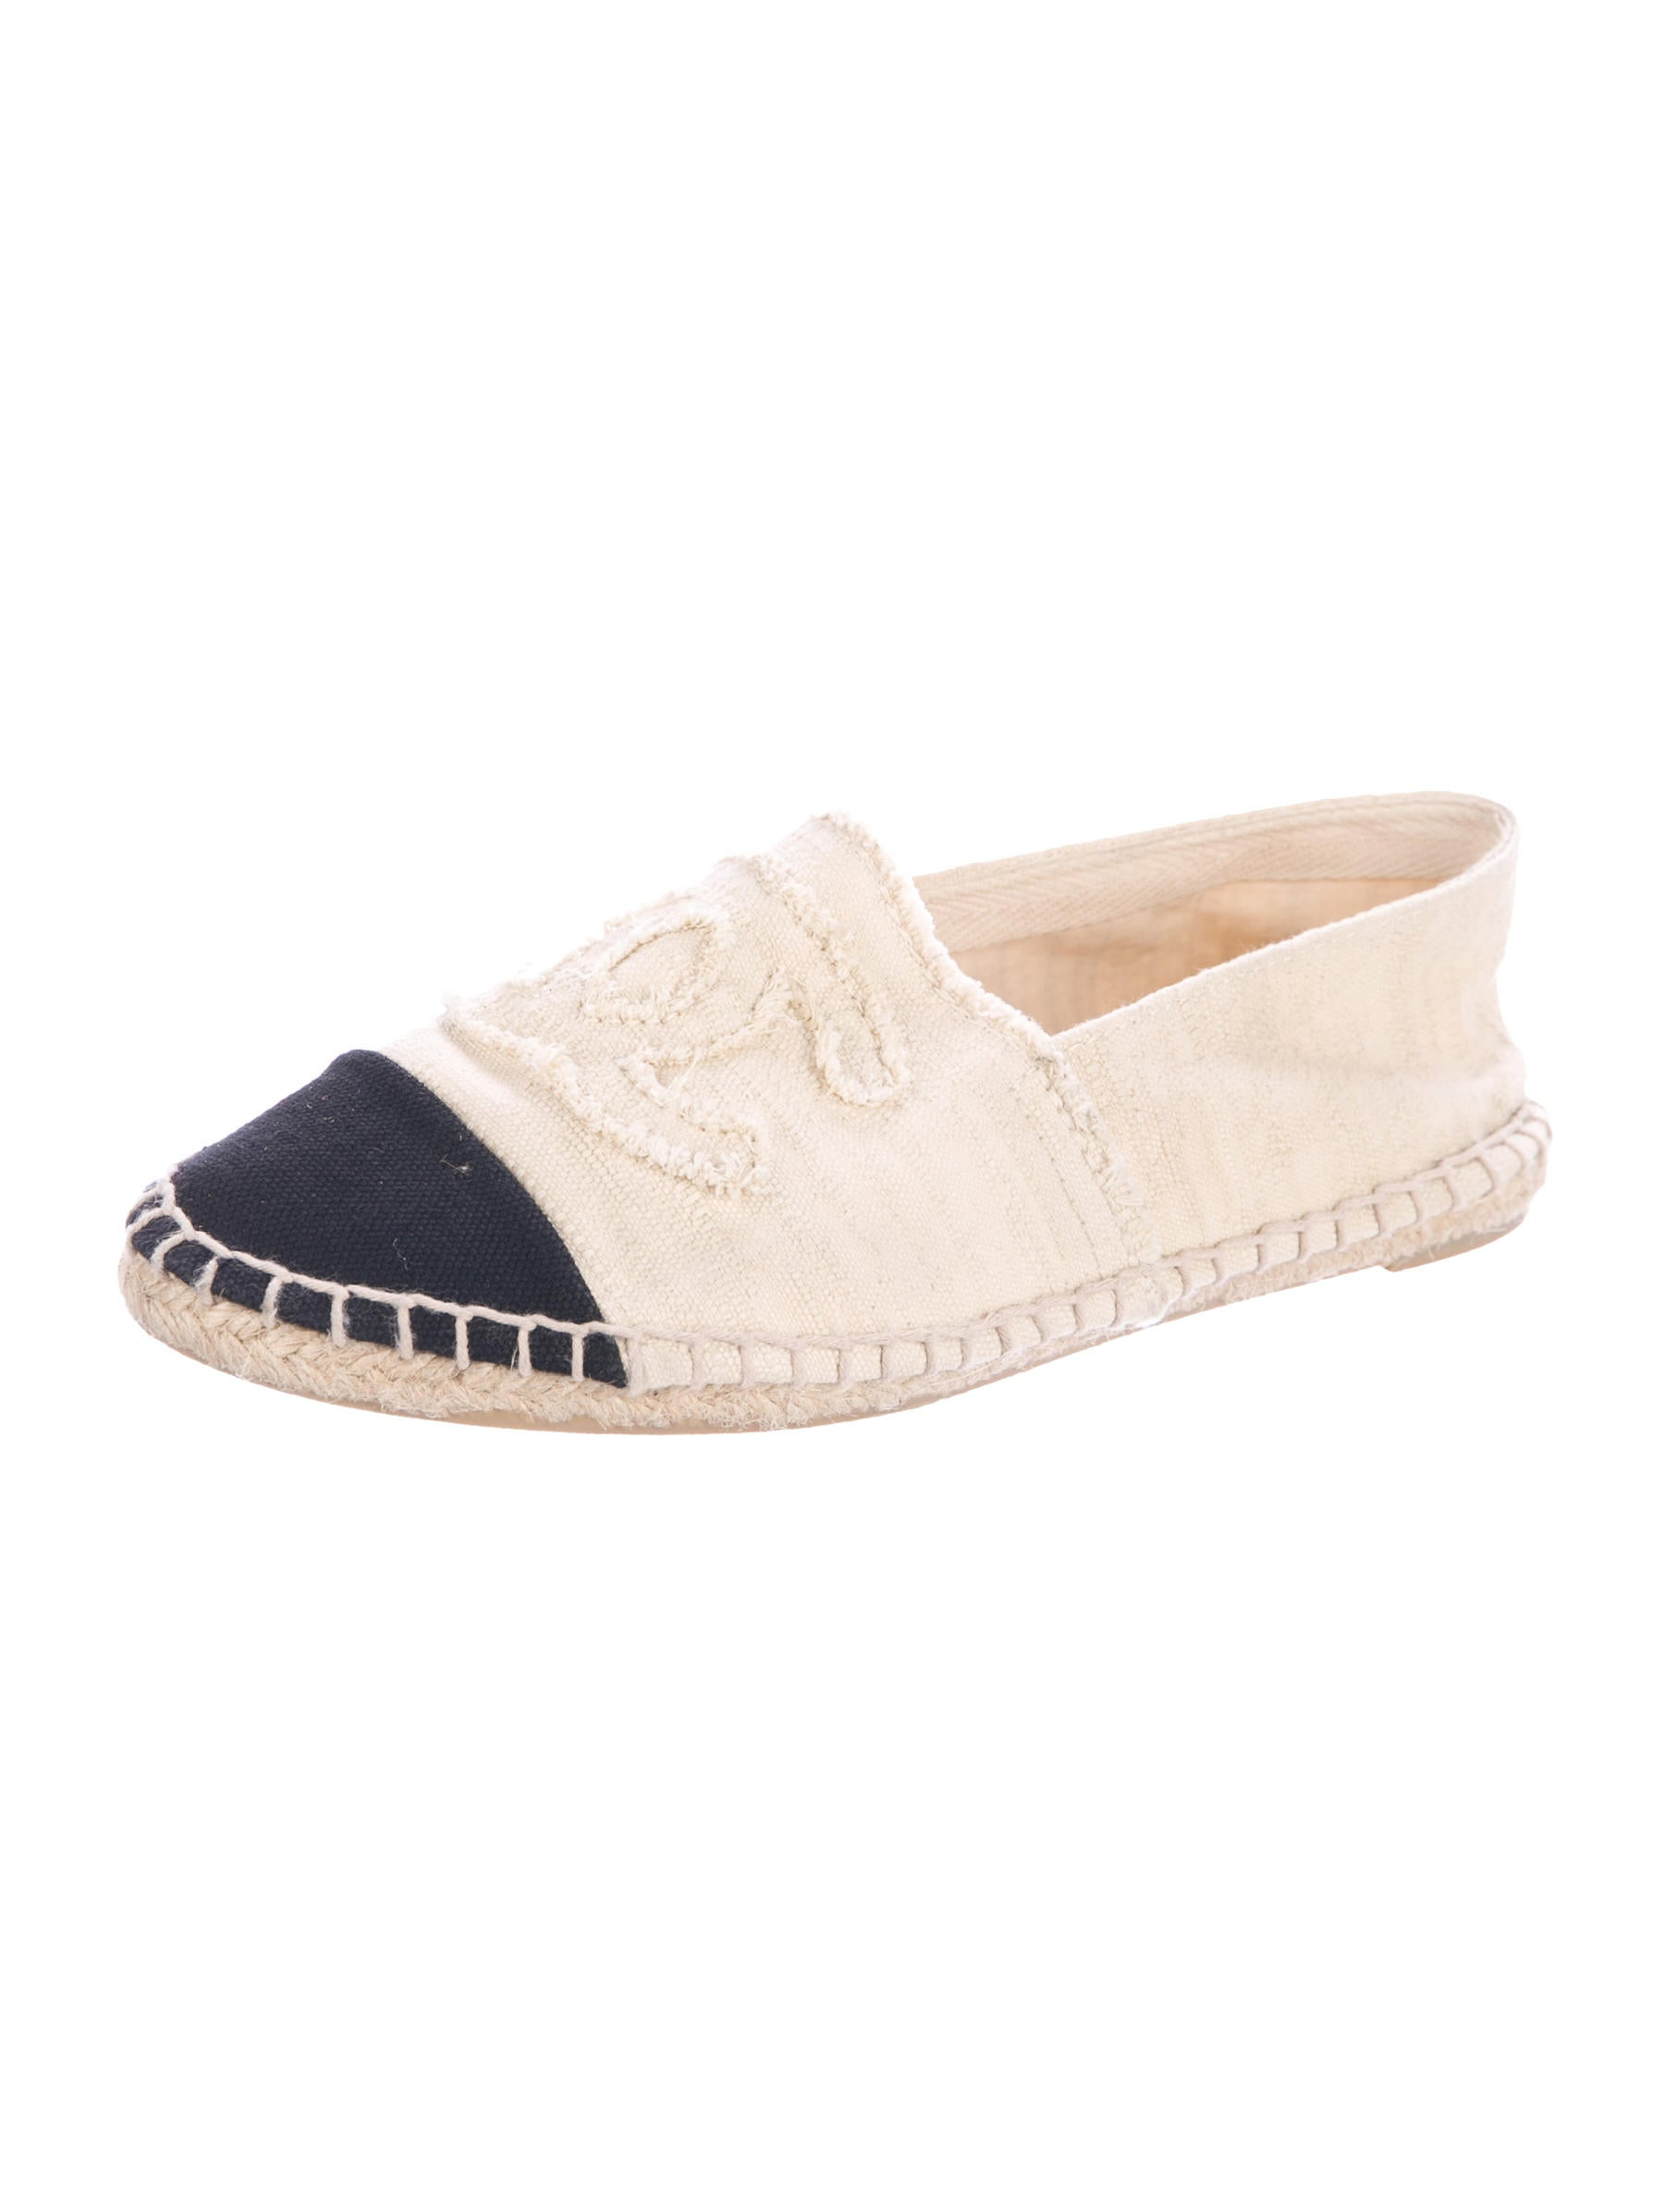 chanel canvas cap toe espadrille flats shoes cha198241